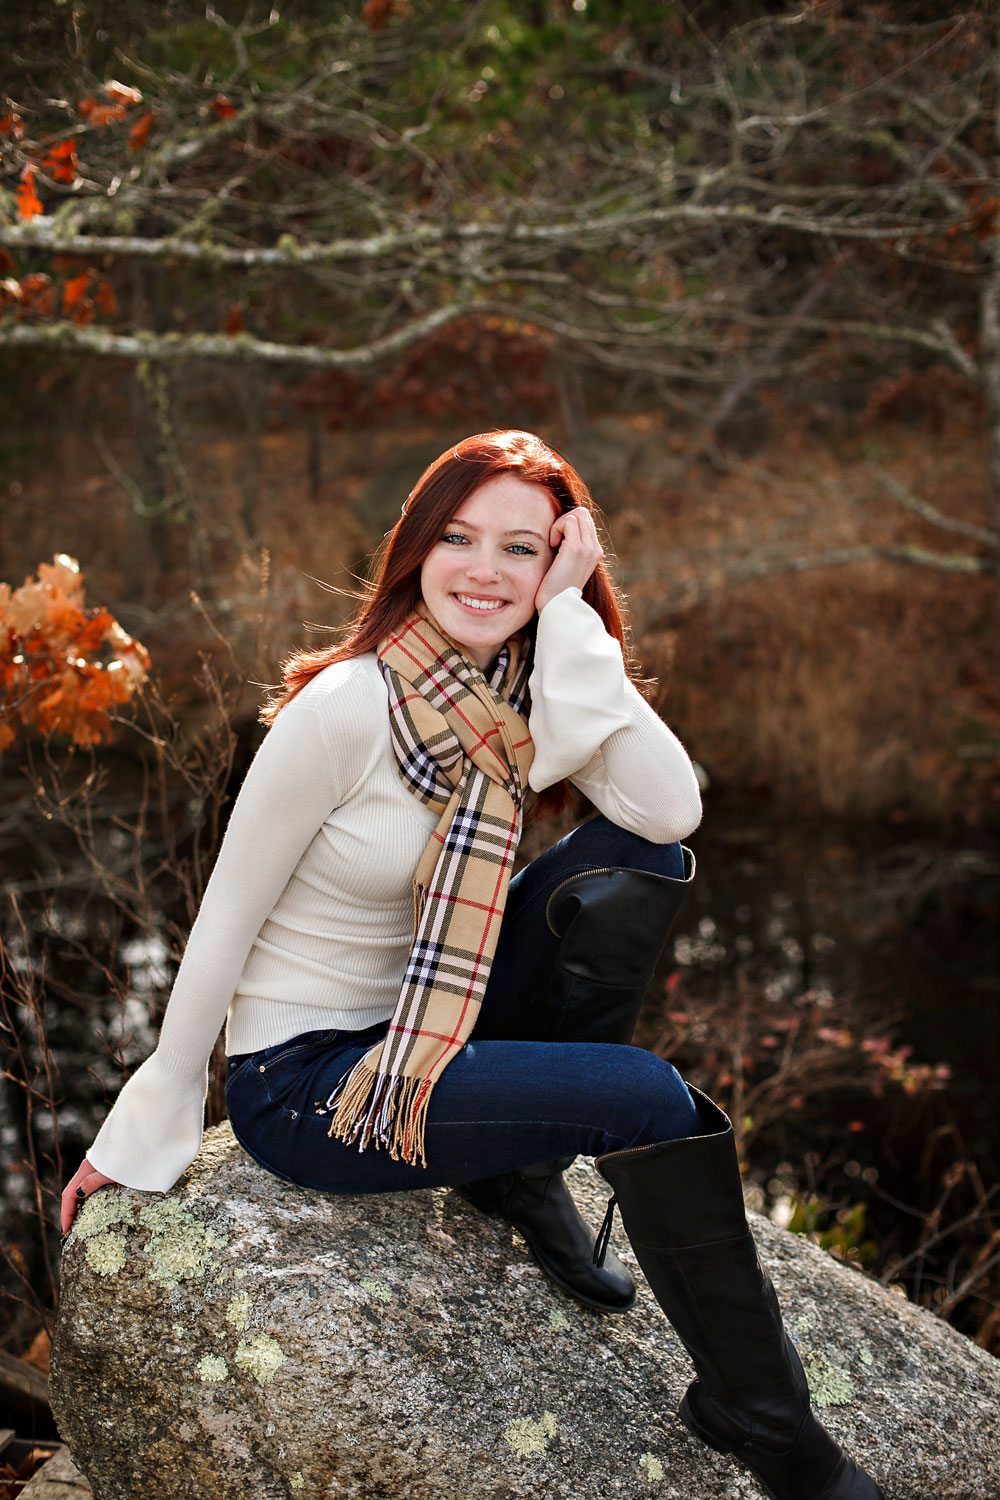 emily-highschool-senior-girl-norwood-massachusetts-cranberry-bog-autumn-wareham-nicole-chaput-photography-003.jpg